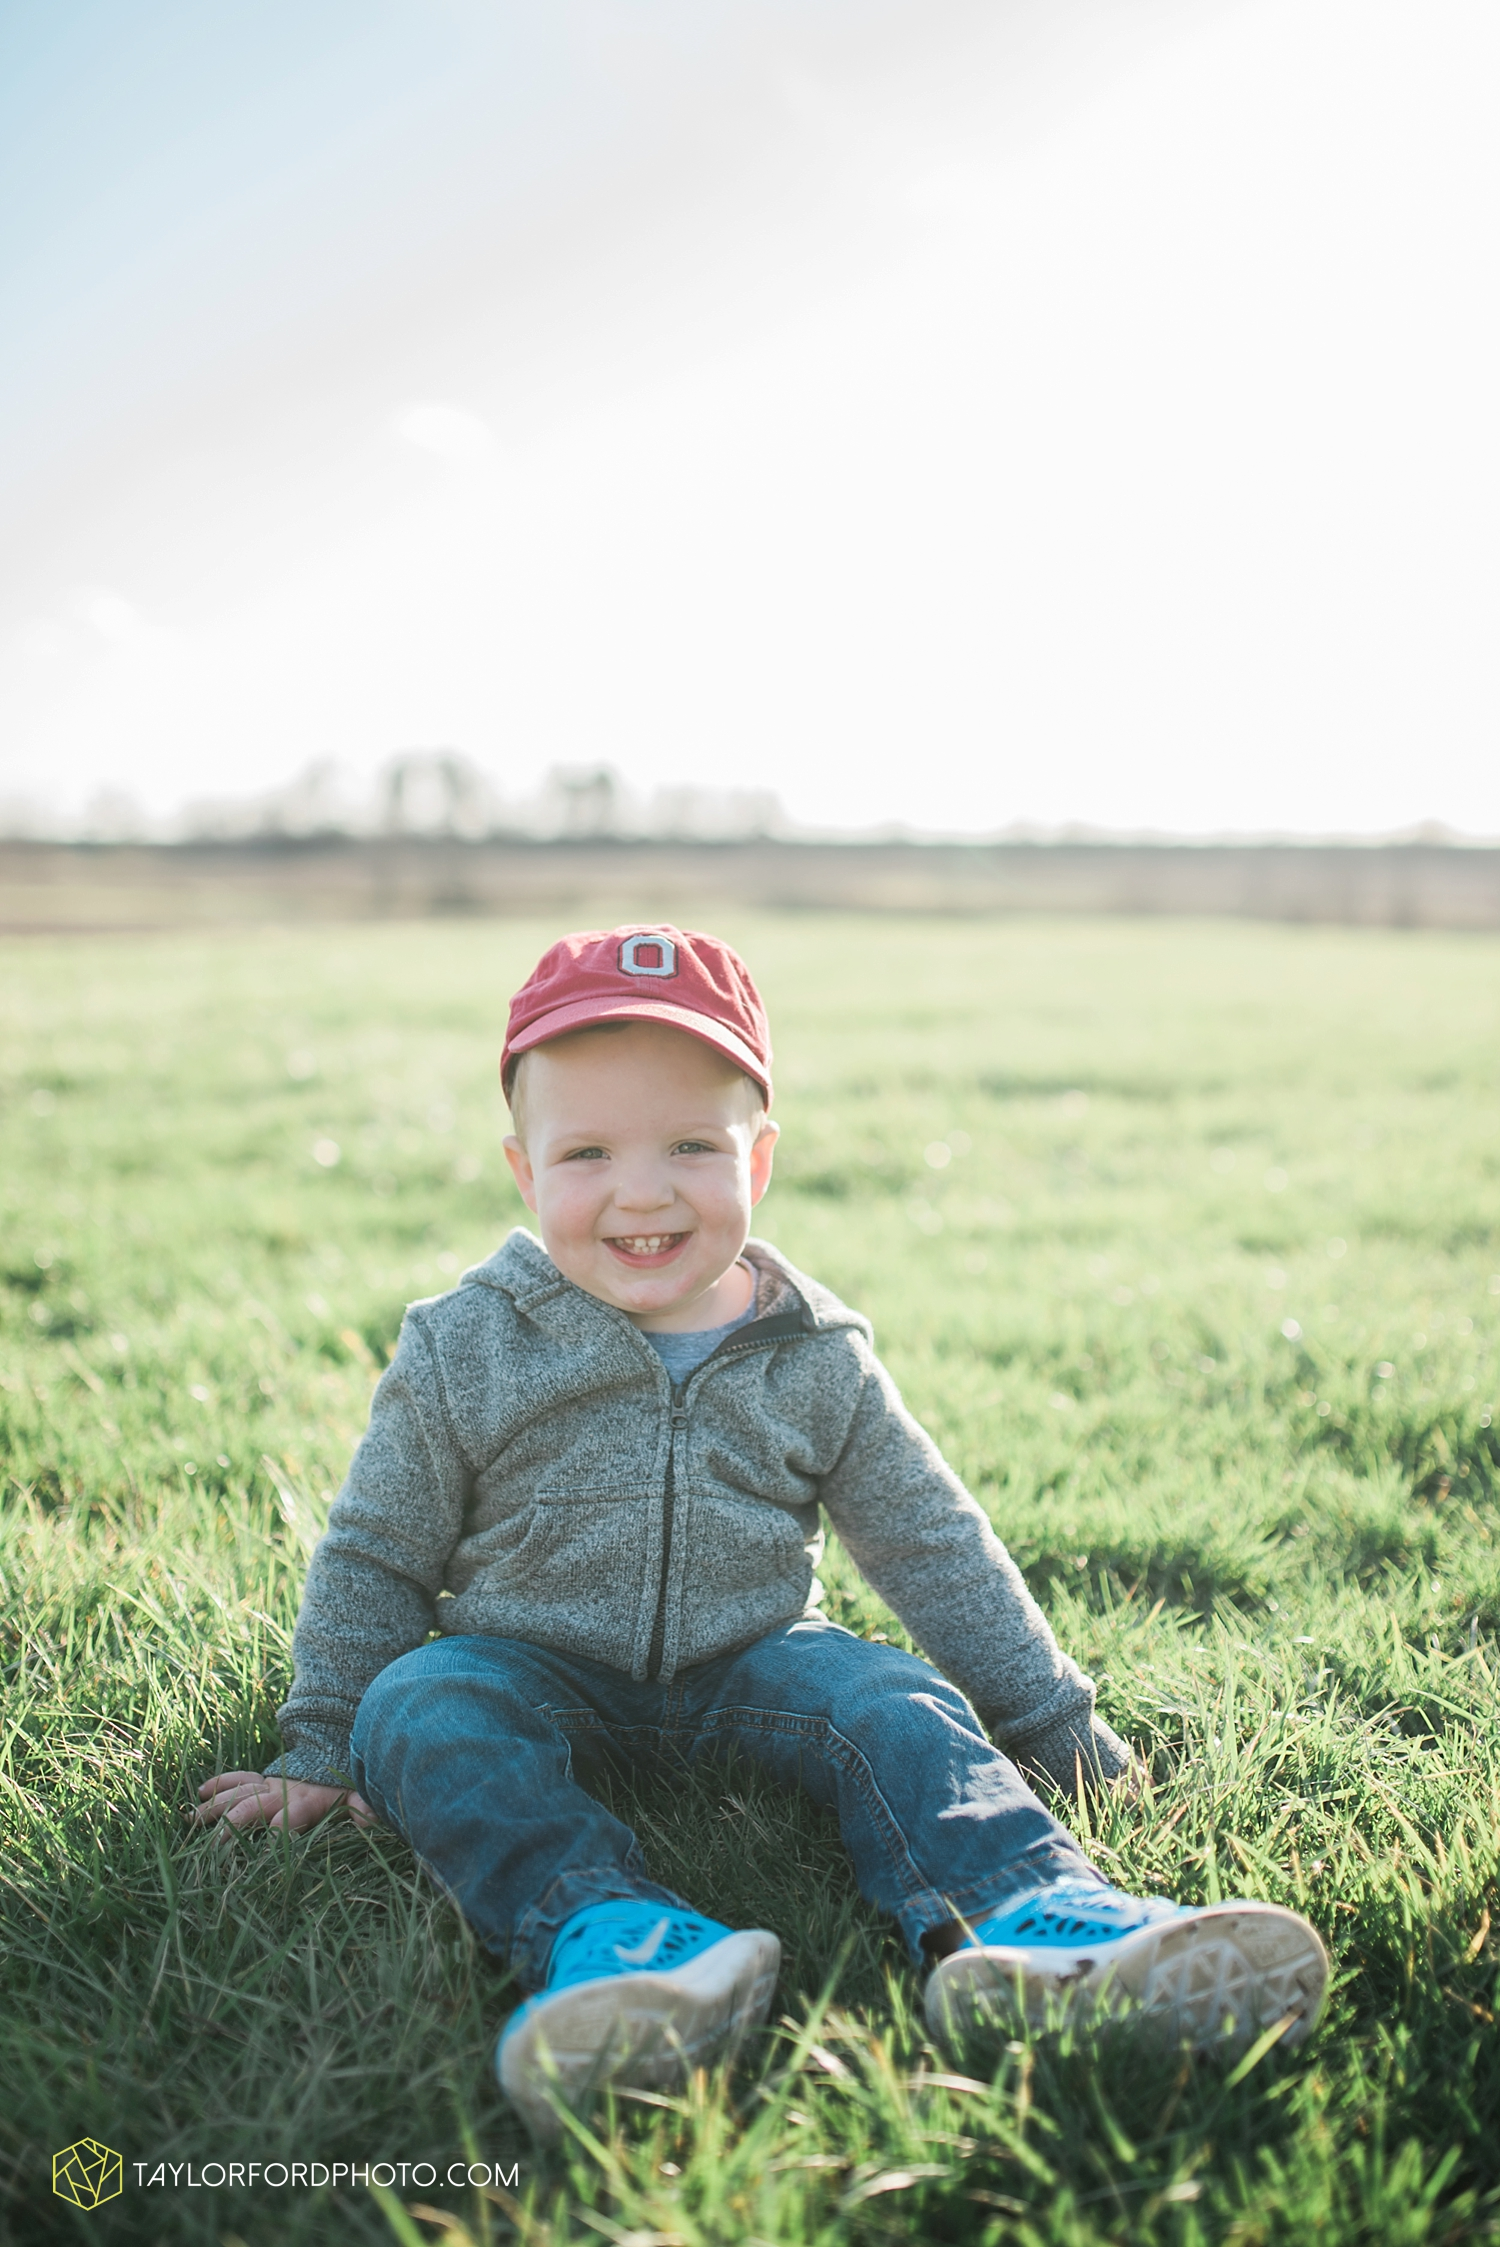 nashville_tennessee_taylor_ford_photography_lifestyle_newborn_family_photographer_4705.jpg